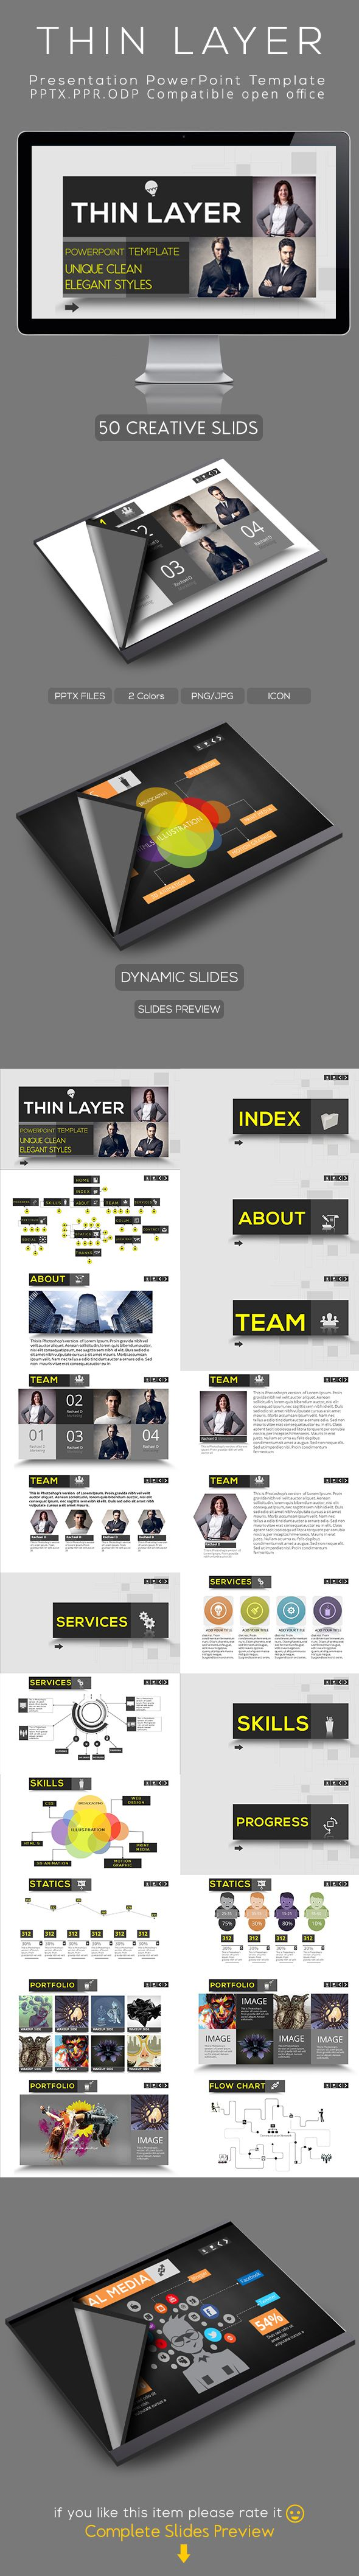 12 best power .point. images on pinterest | loft, presentation and, Presentation templates